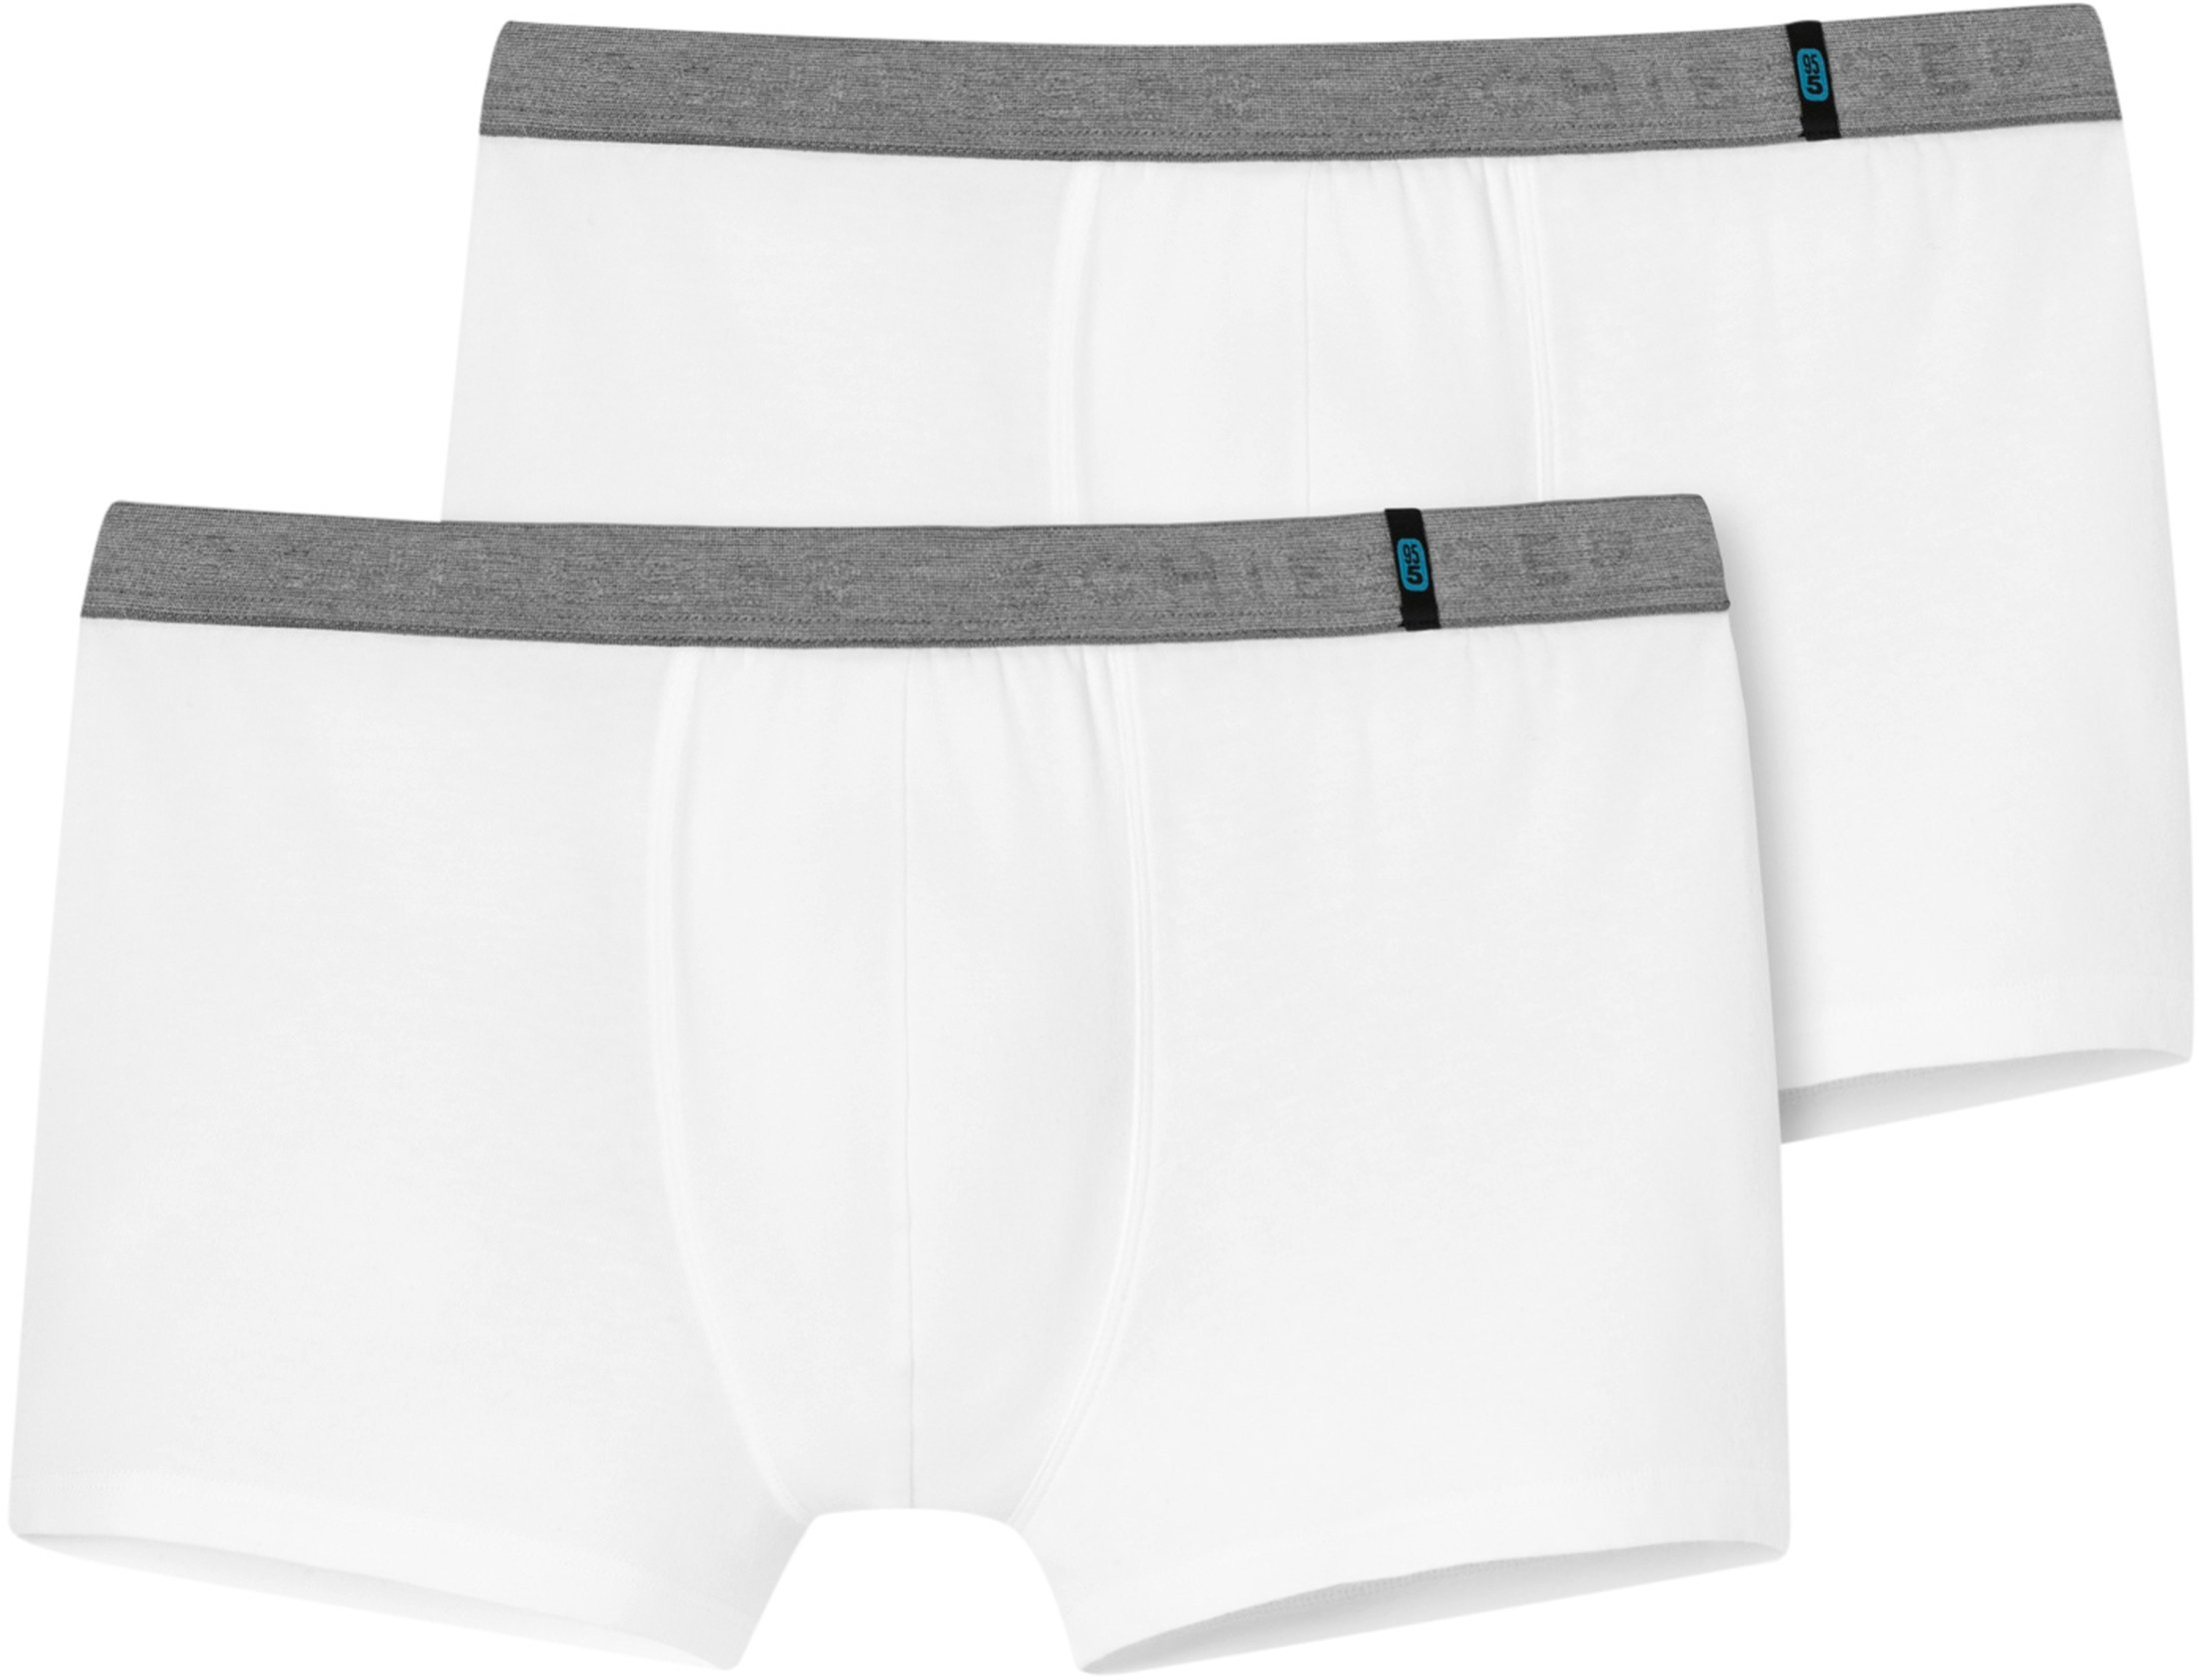 Schiesser Boxer Shorts White Grey 2-Pack